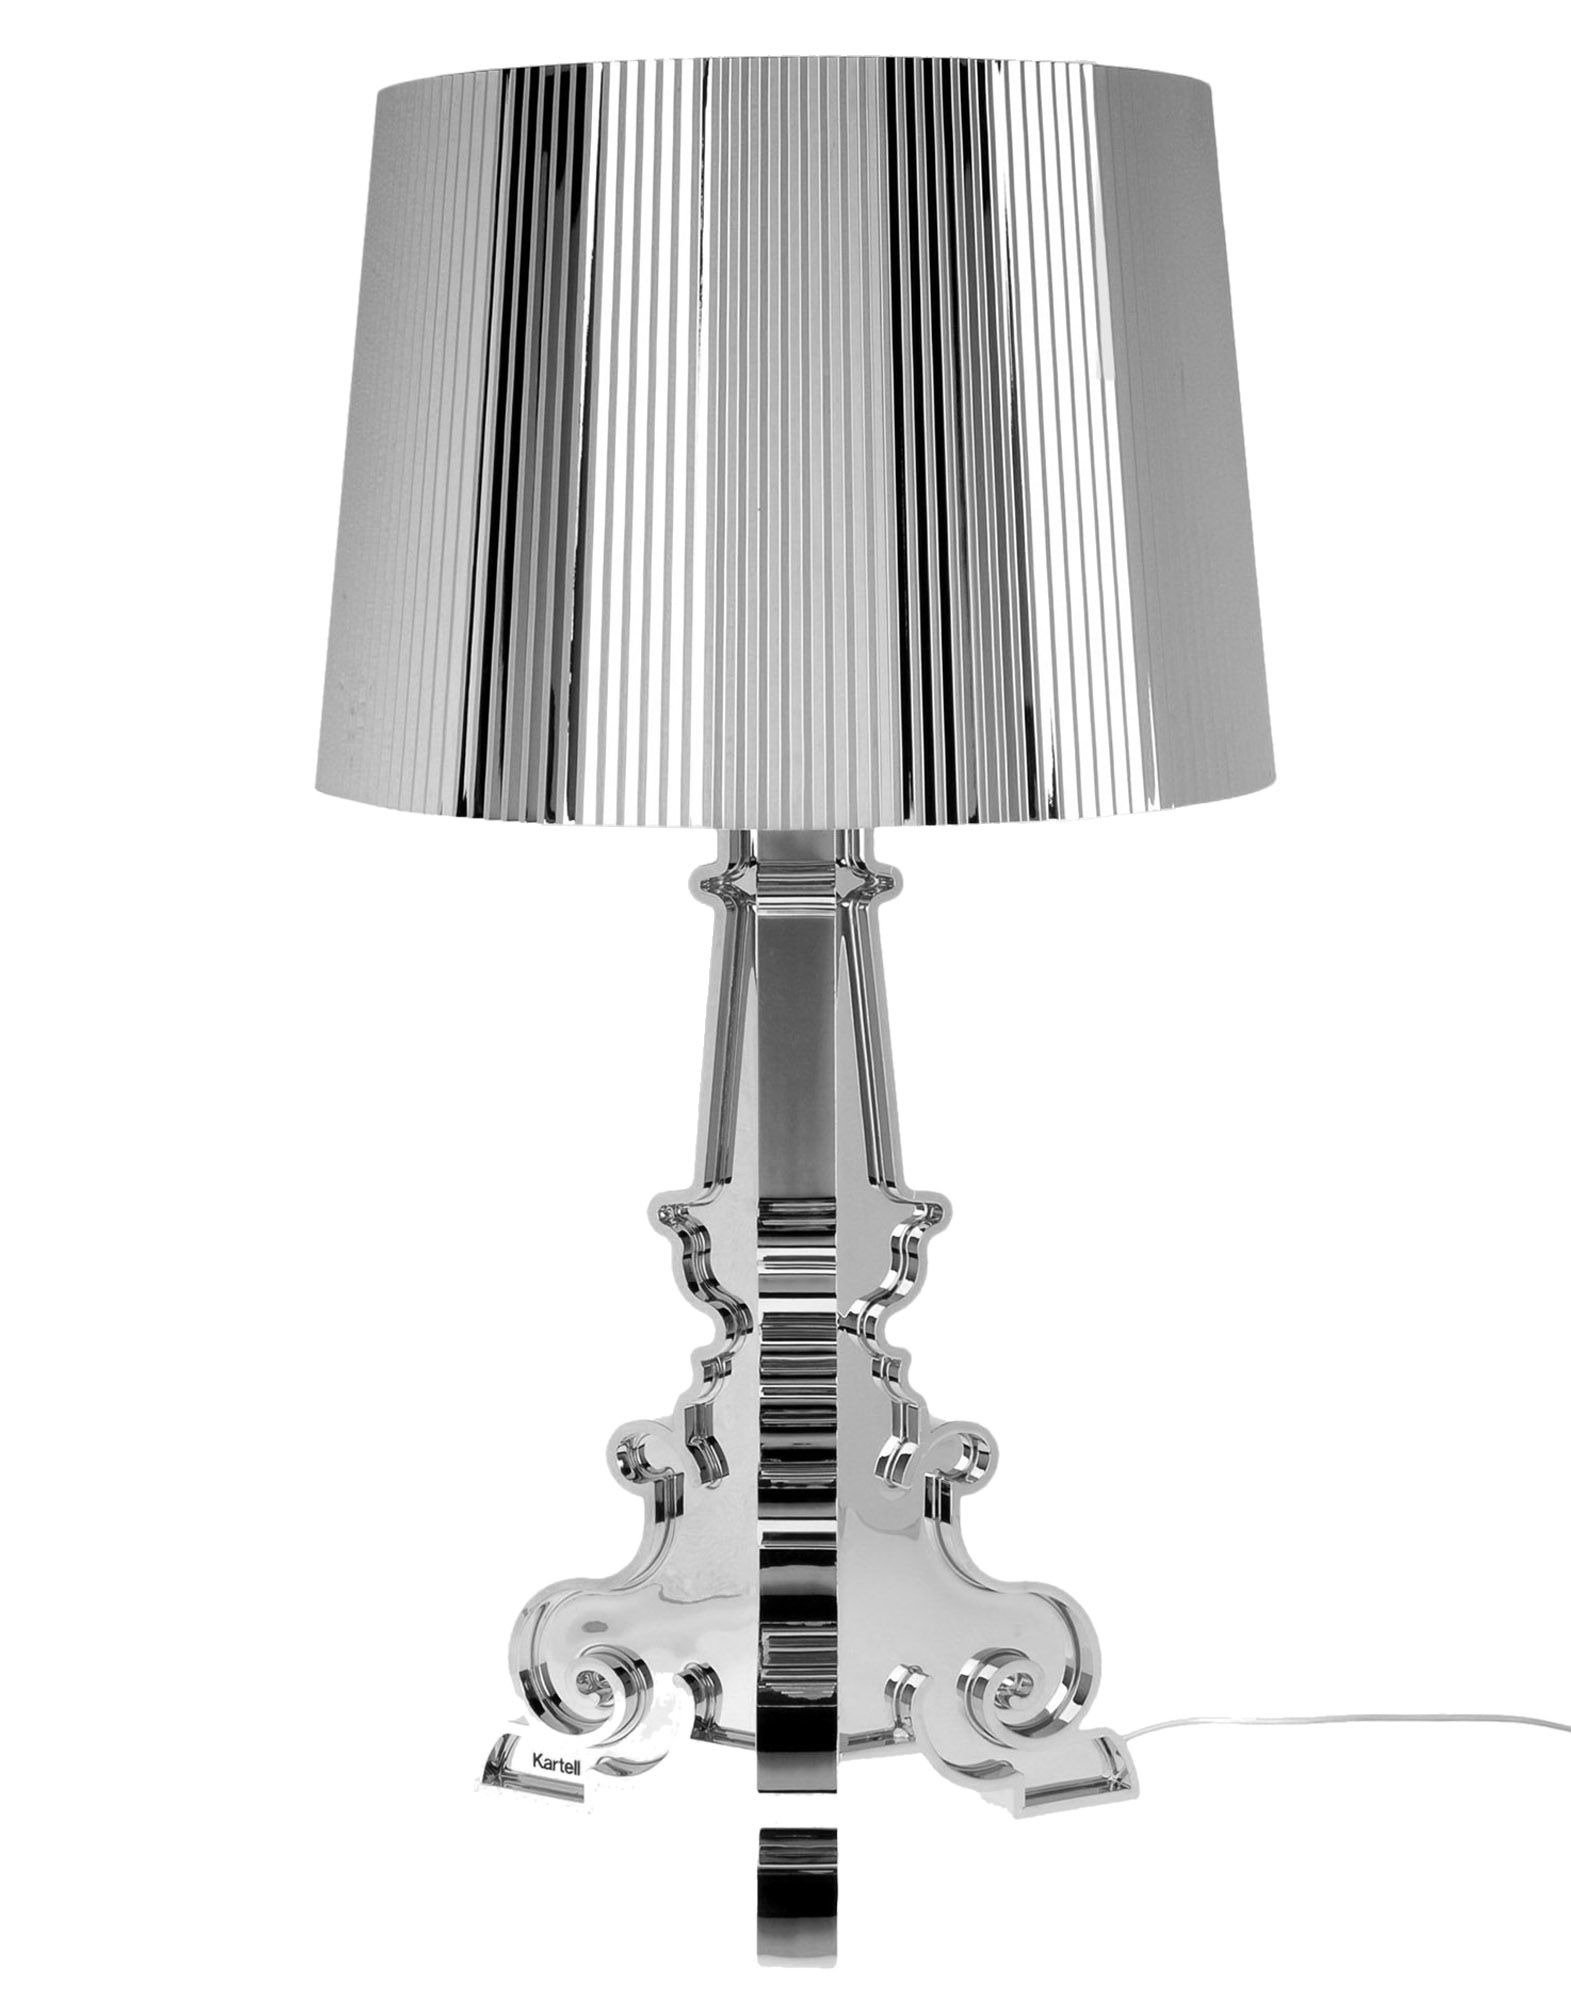 KARTELL Настольная лампа jueja modern crystal chandeliers lighting led pendant lamp for foyer living room dining bedroom